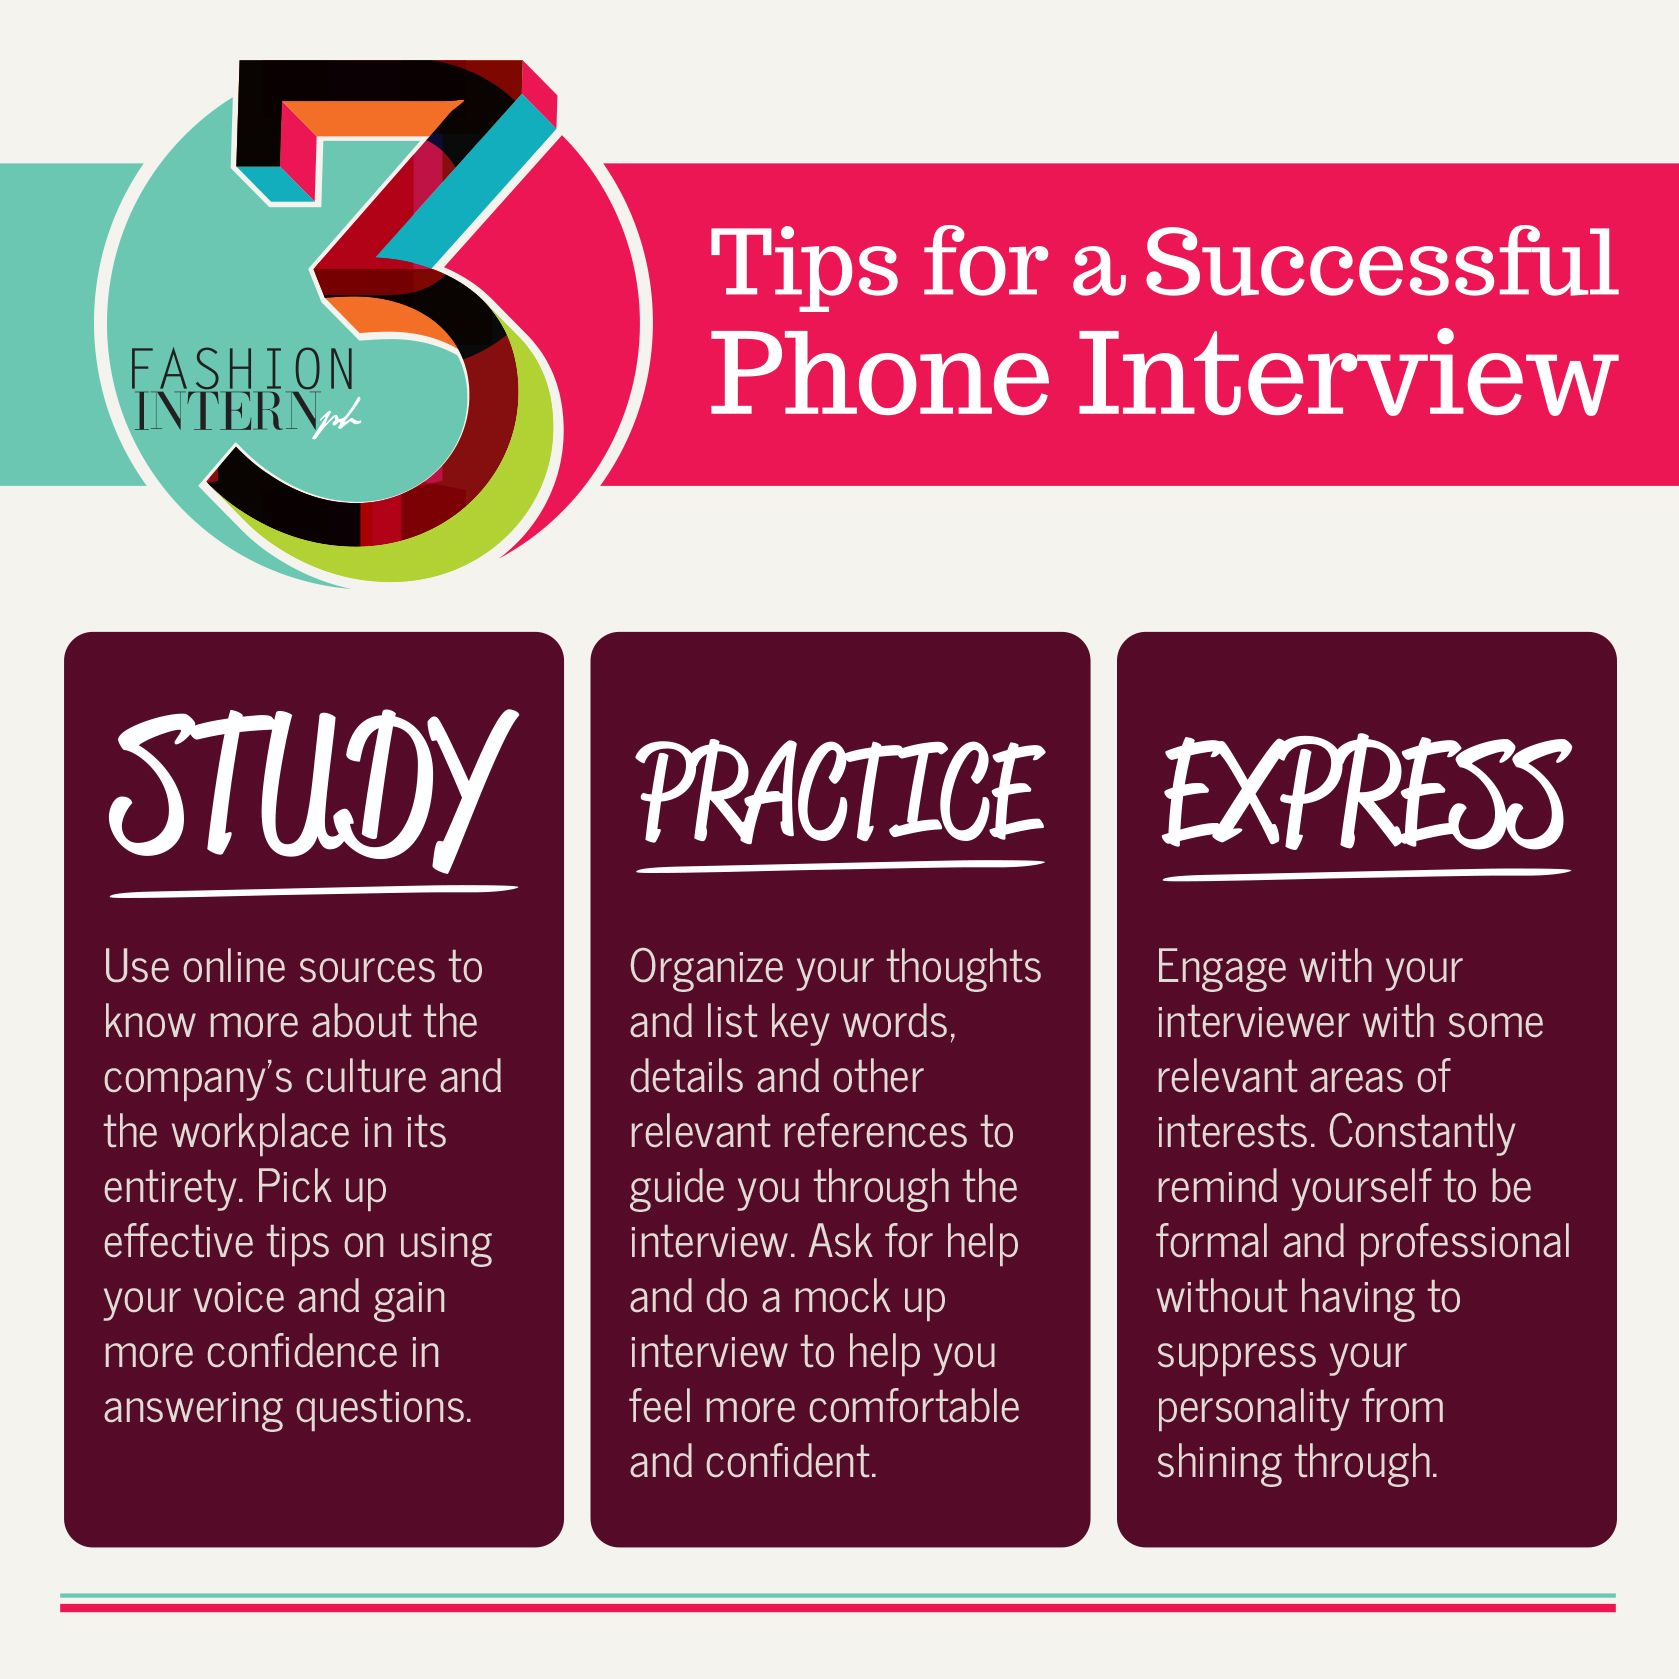 infographic 3 tips for a successful phone interview tips career infographic 3 tips for a successful phone interview tips career